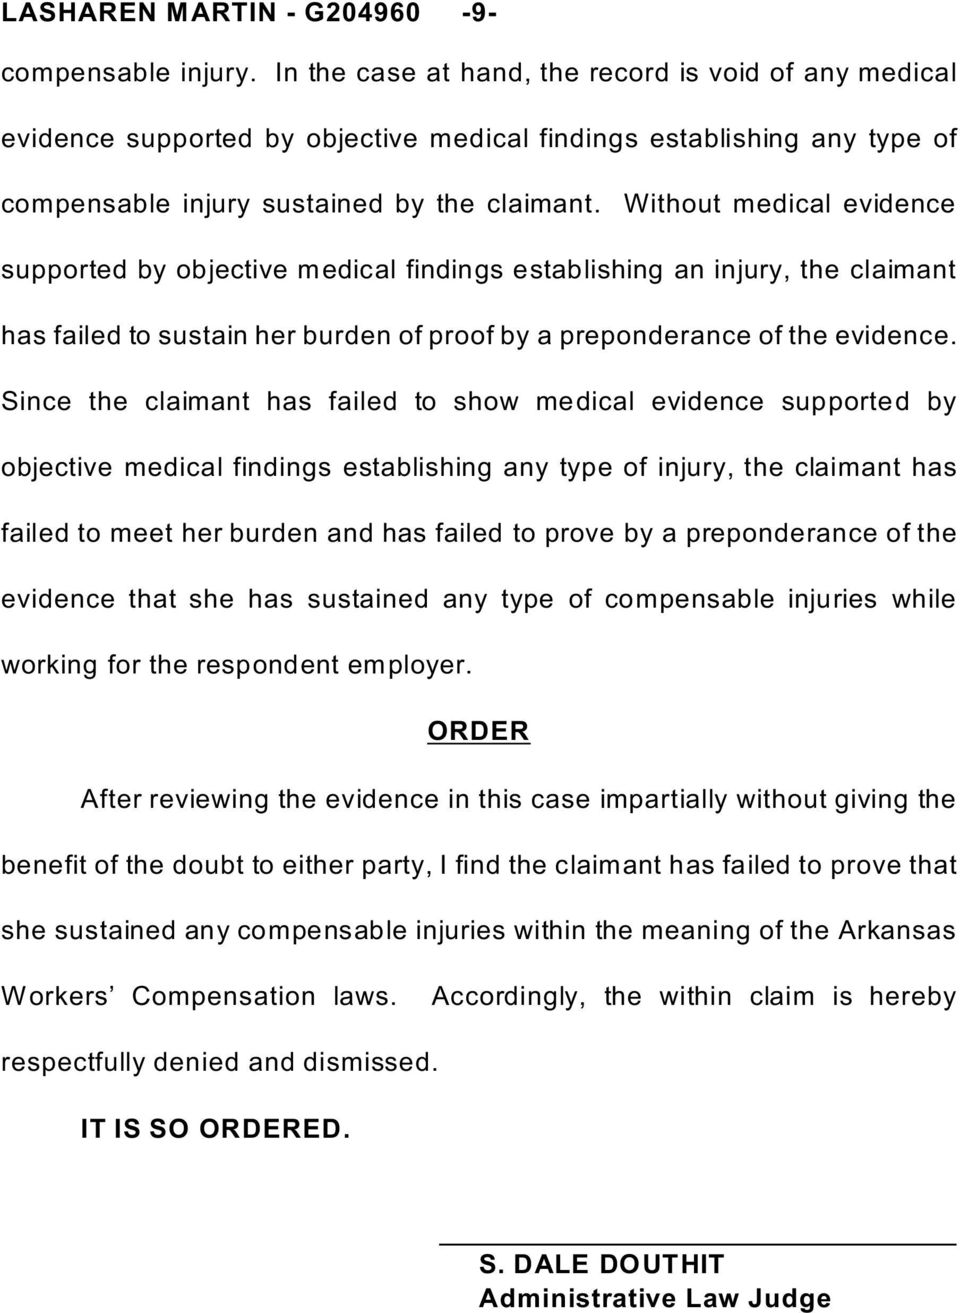 Without medical evidence supported by objective medical findings establishing an injury, the claimant has failed to sustain her burden of proof by a preponderance of the evidence.